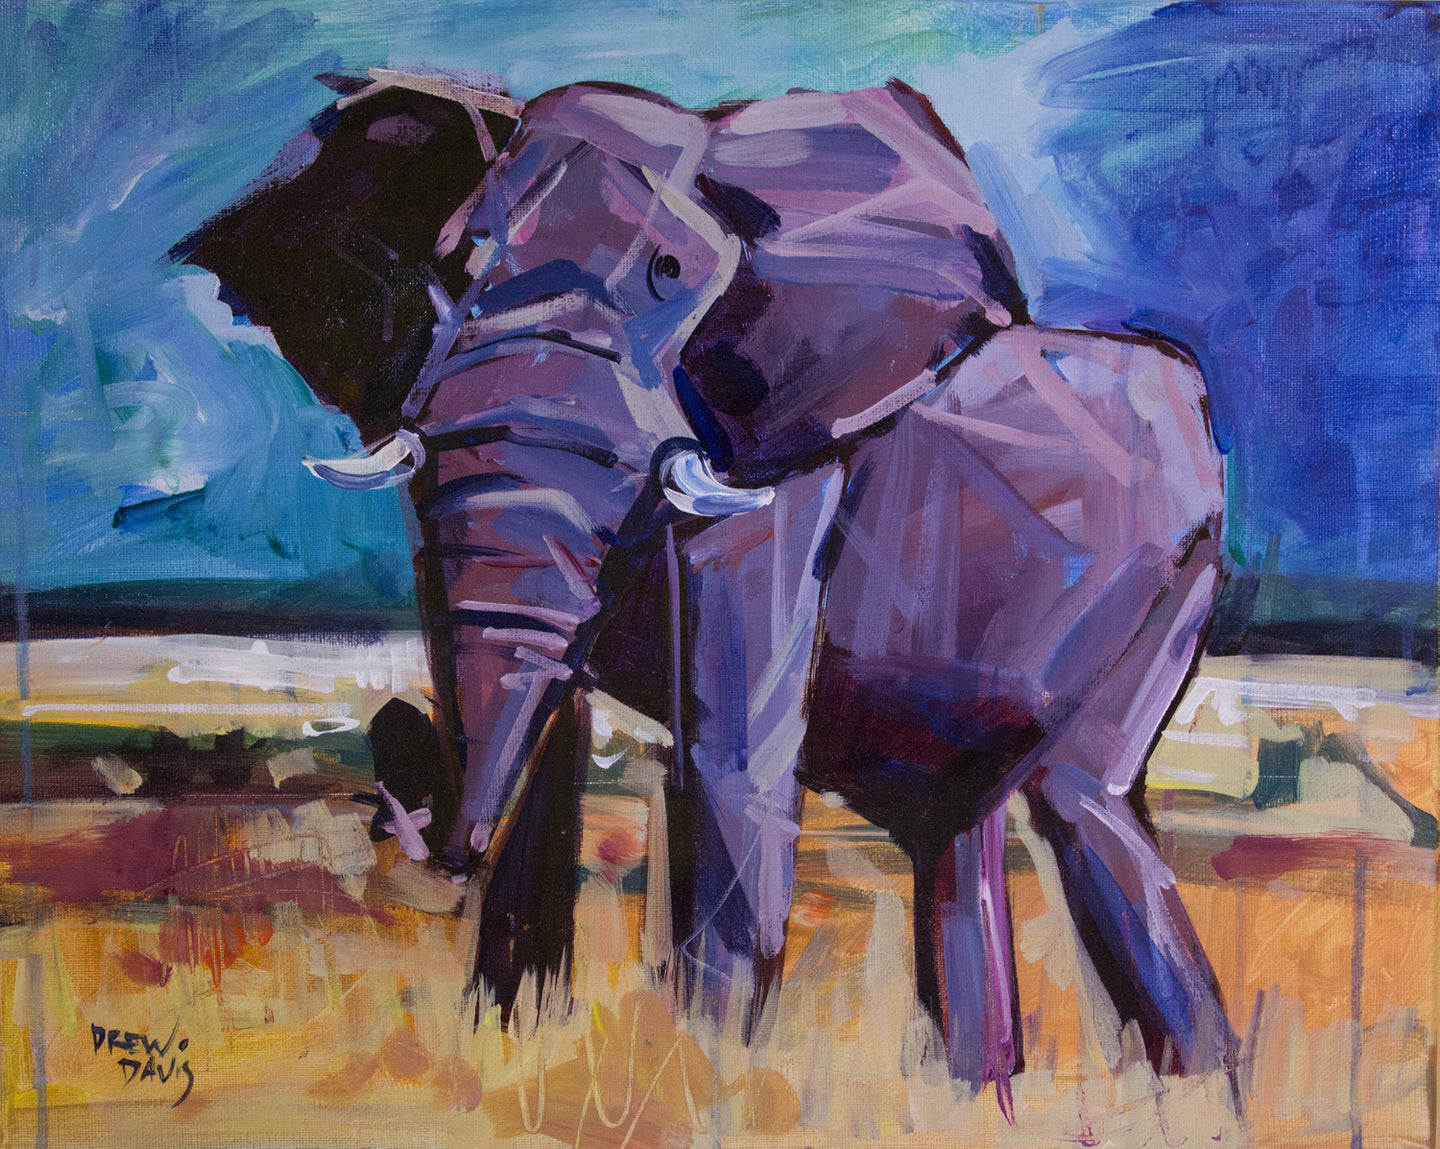 ELEPHANT 2 | 16x20 | Original Acrylic Study on Canvas